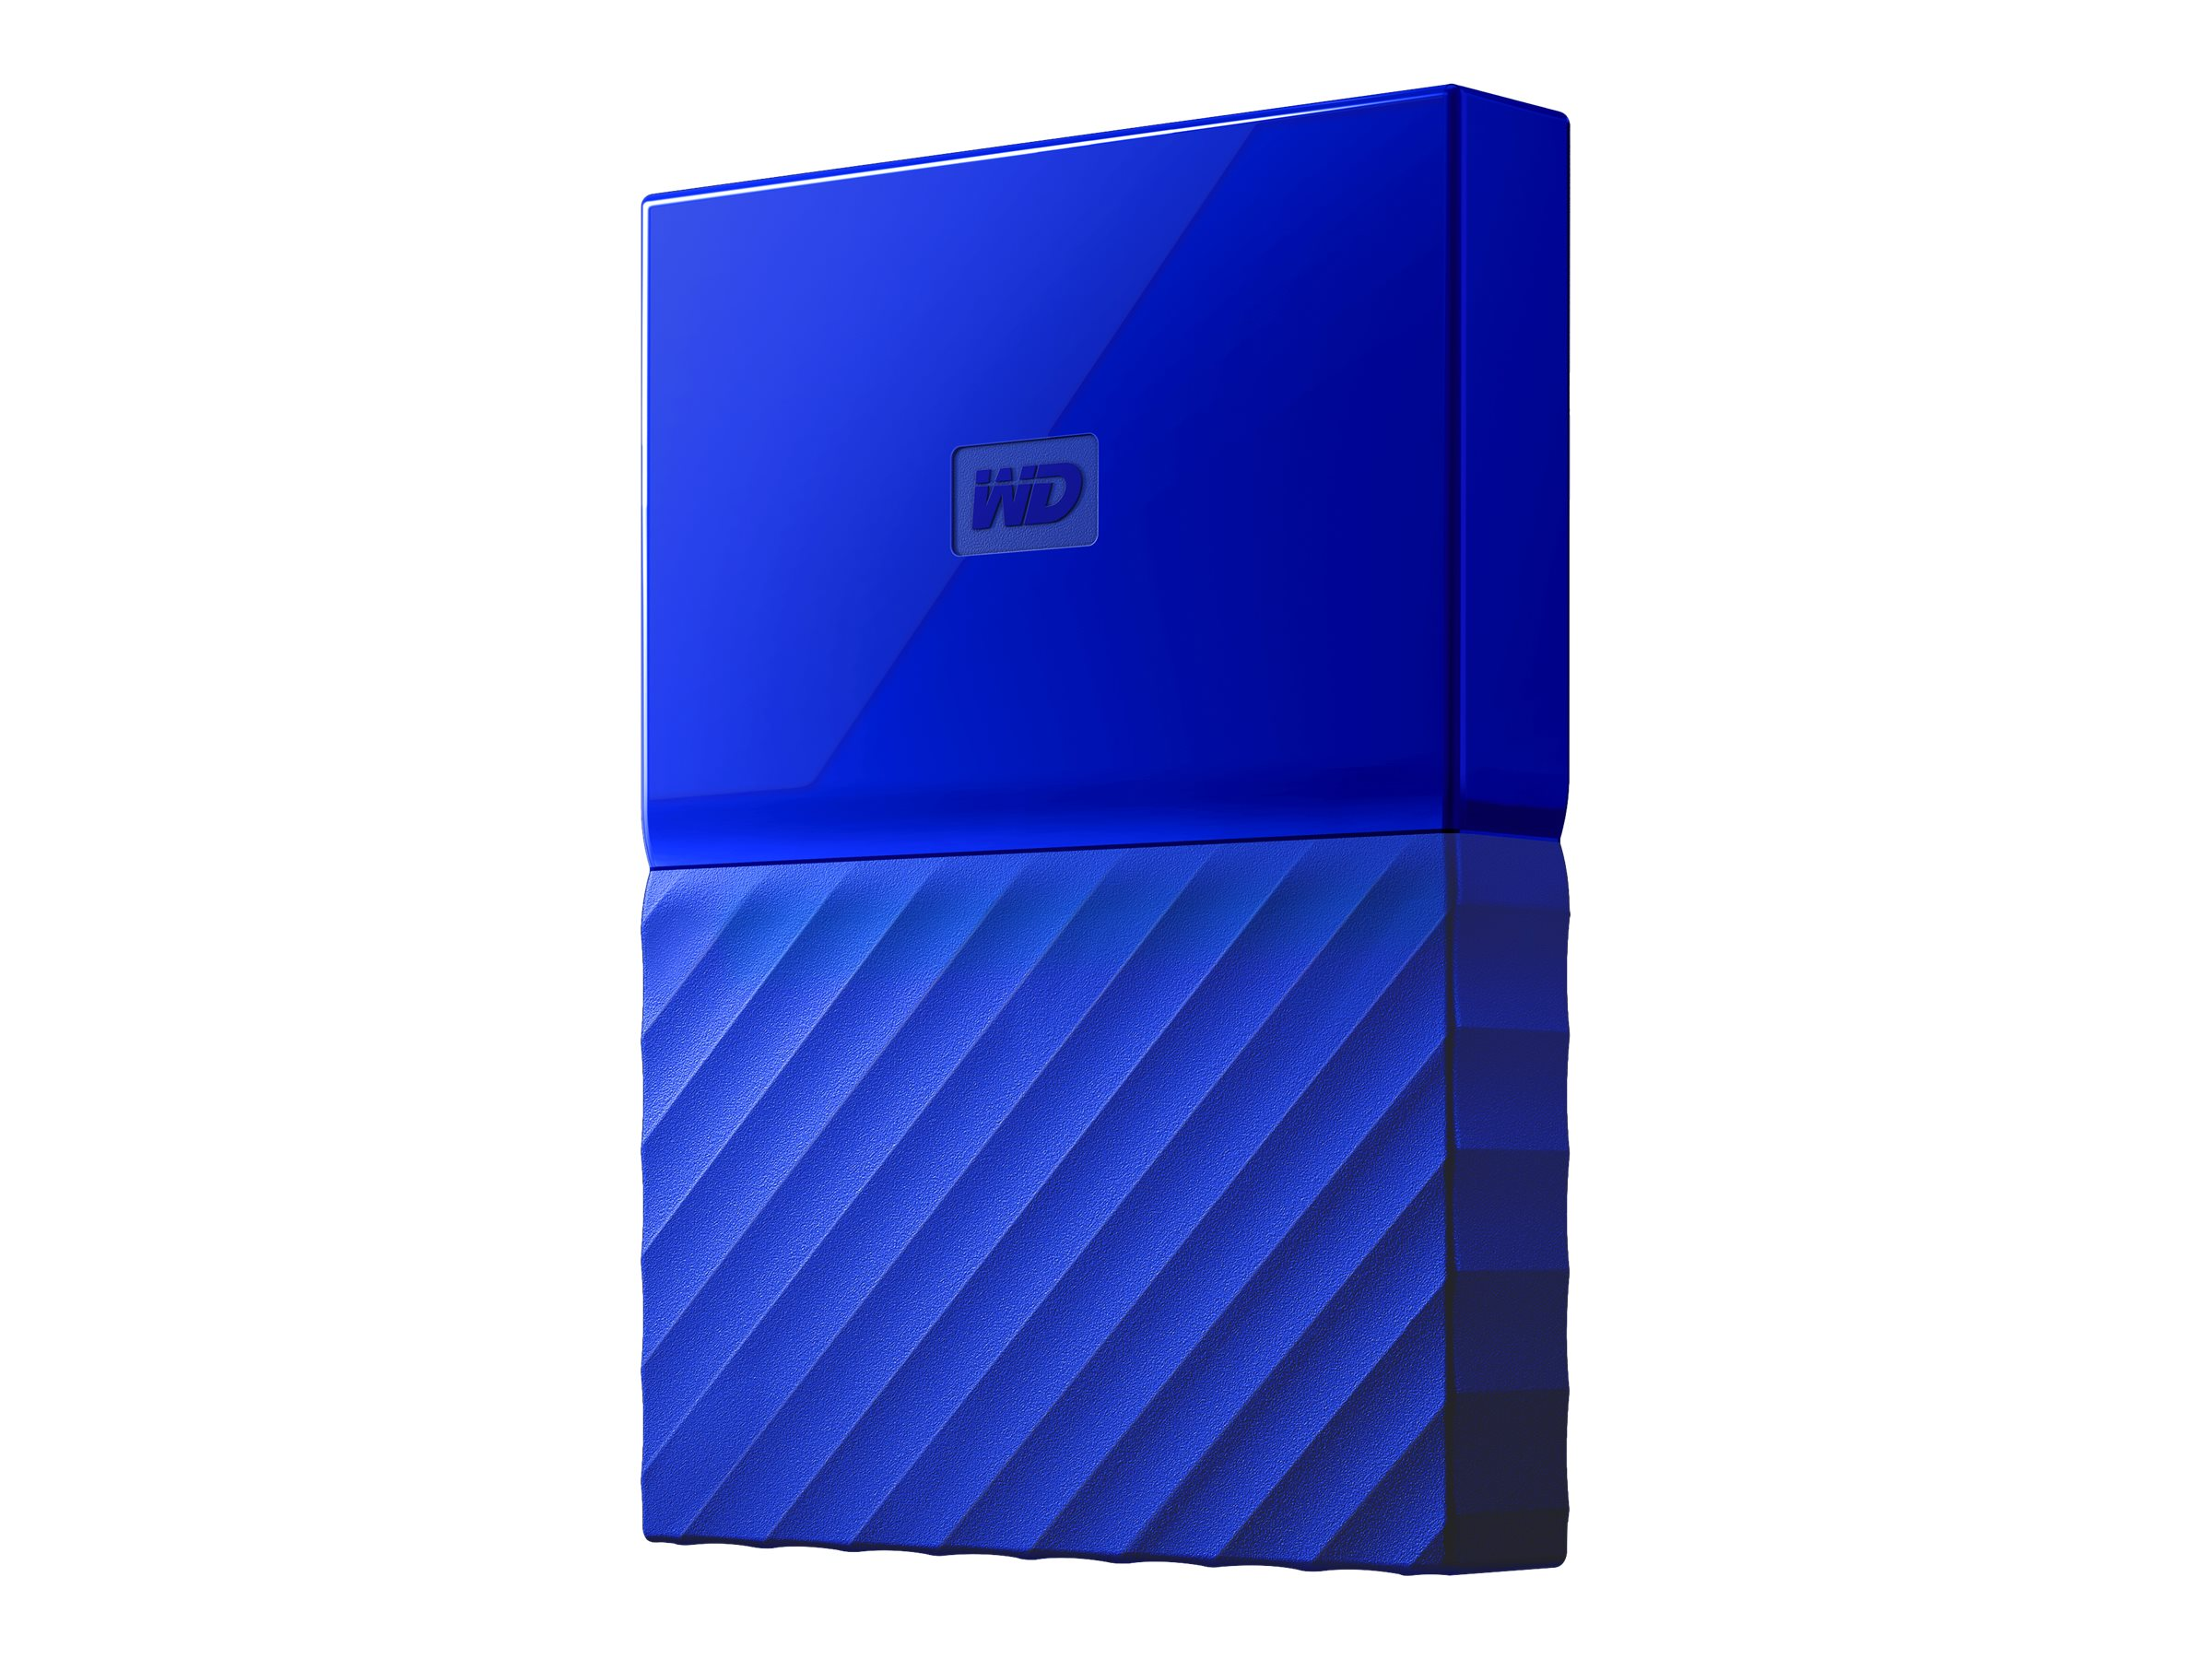 WD 1TB My Passport USB 3.0 Portable Hard Drive - Blue, WDBYNN0010BBL-WESN